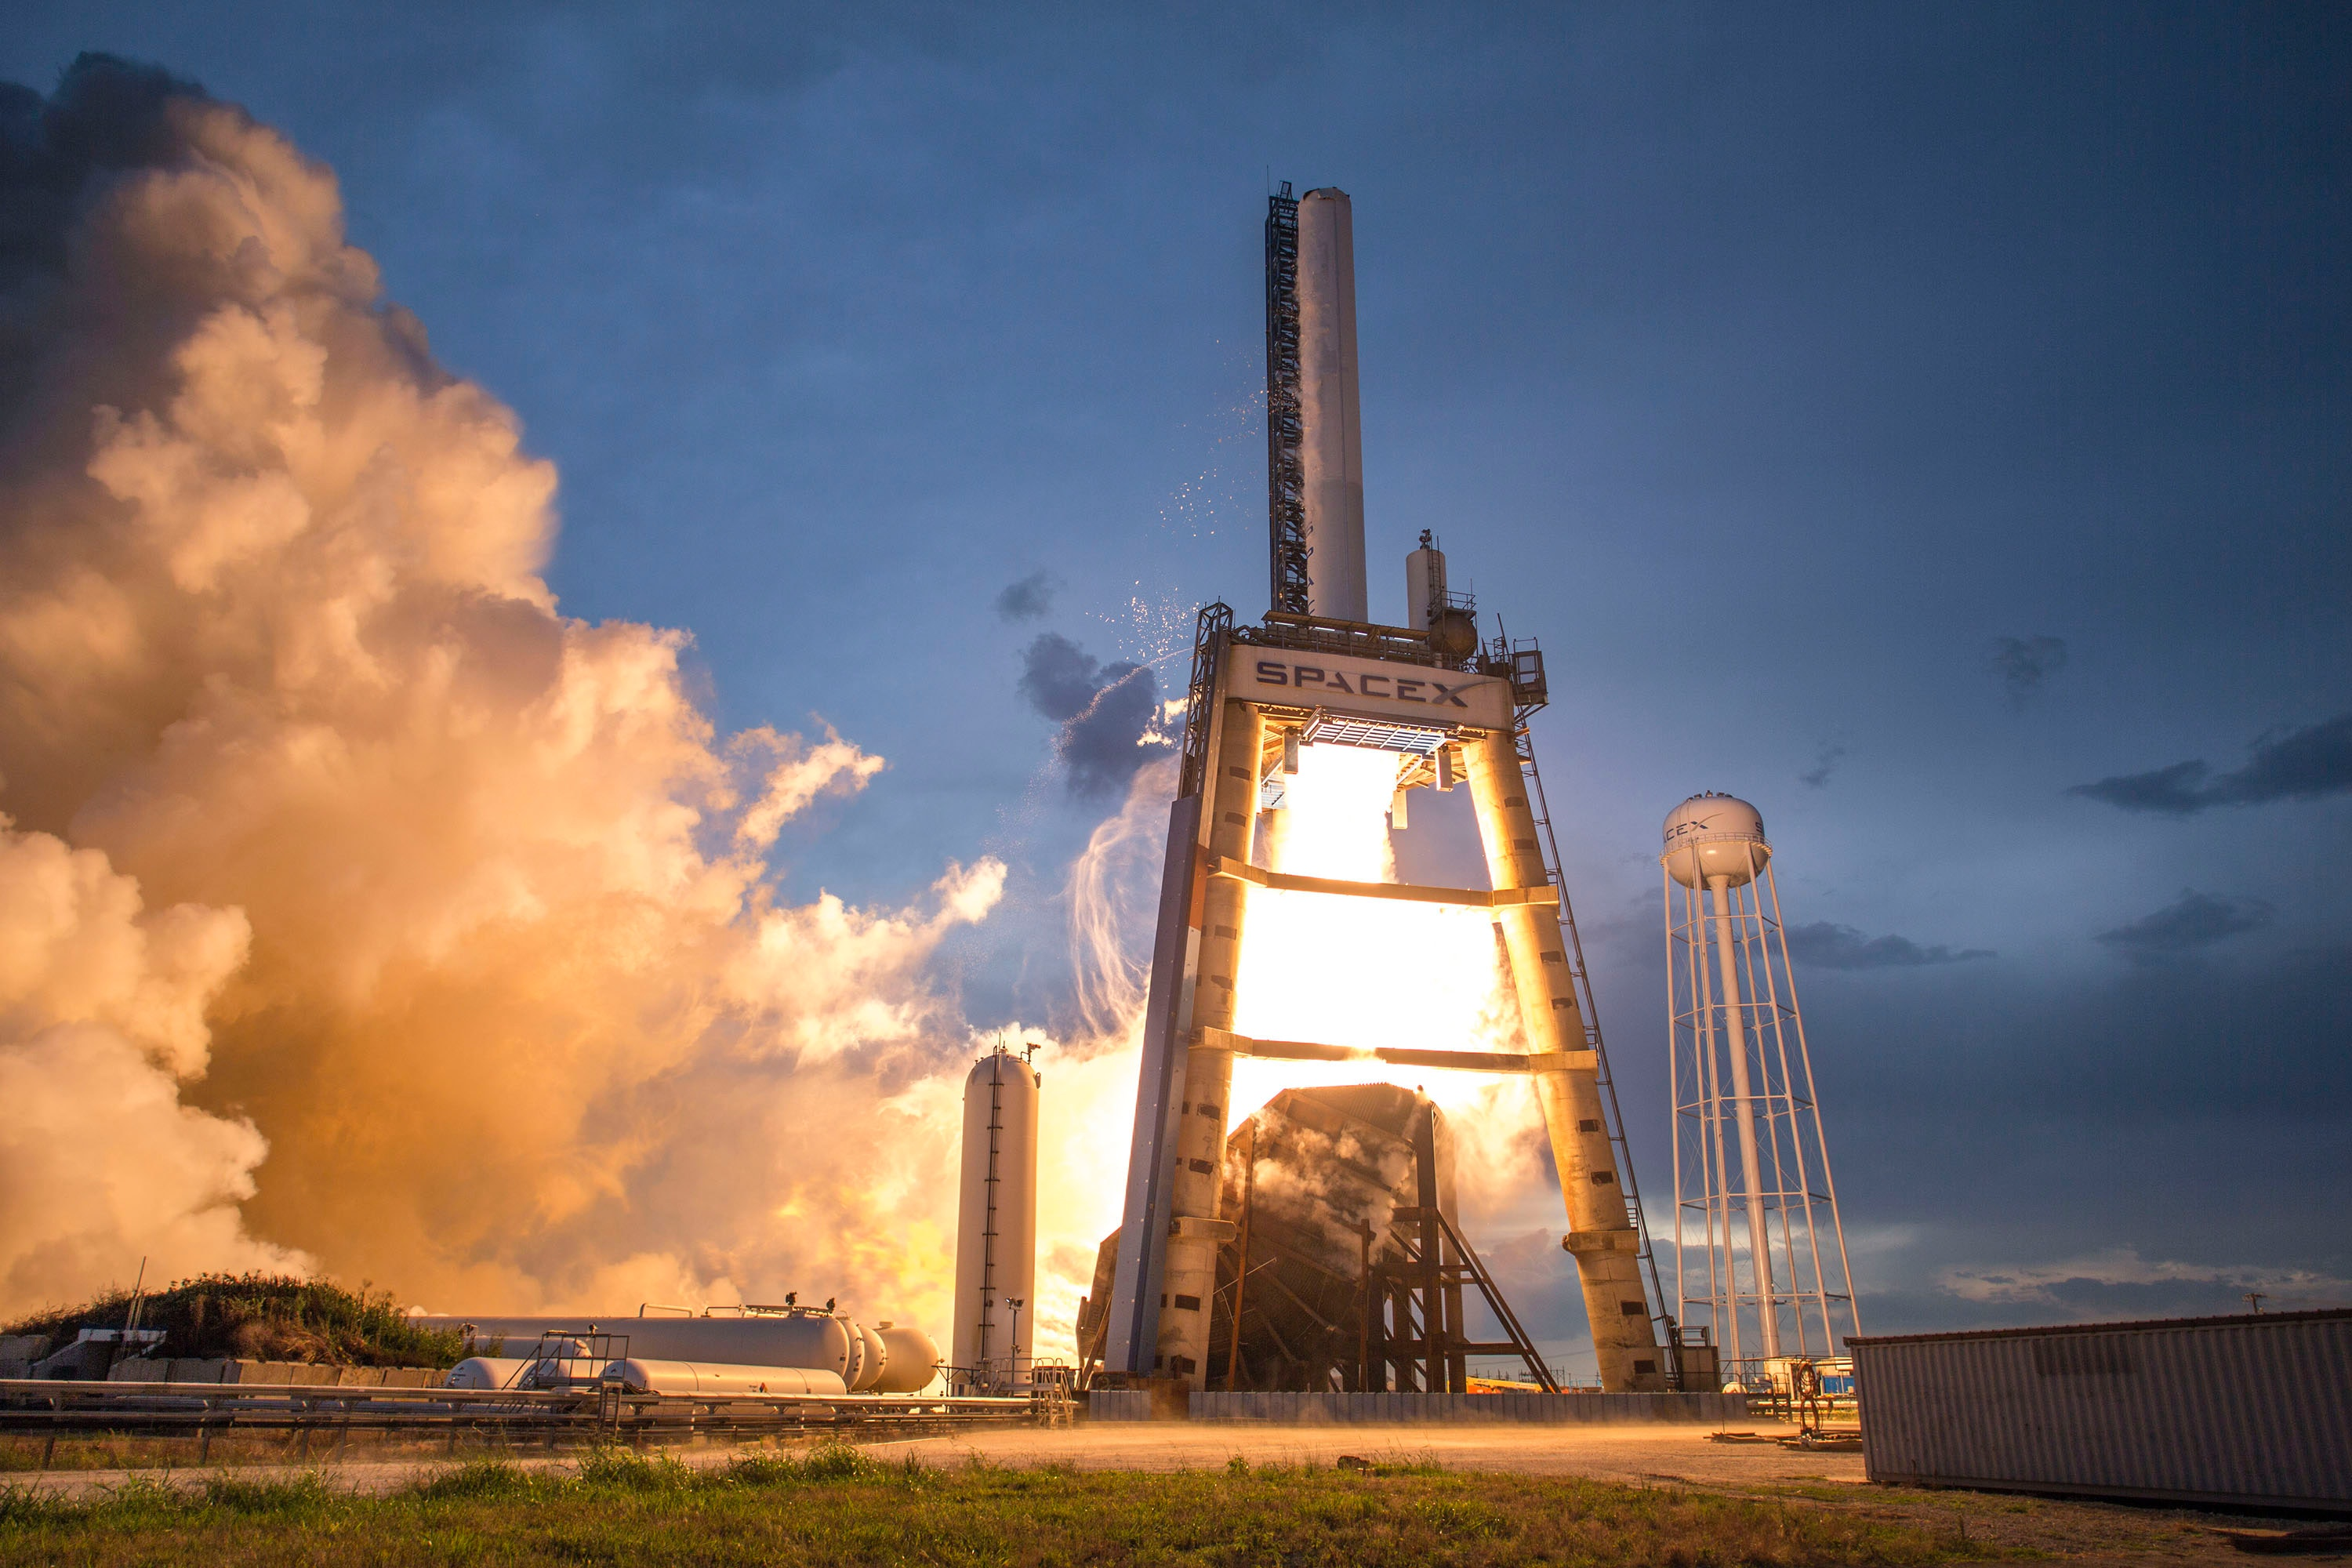 Photo of Gray and White Spacex Space Shuttle, Architecture, Power, Technology, Sunset, HQ Photo